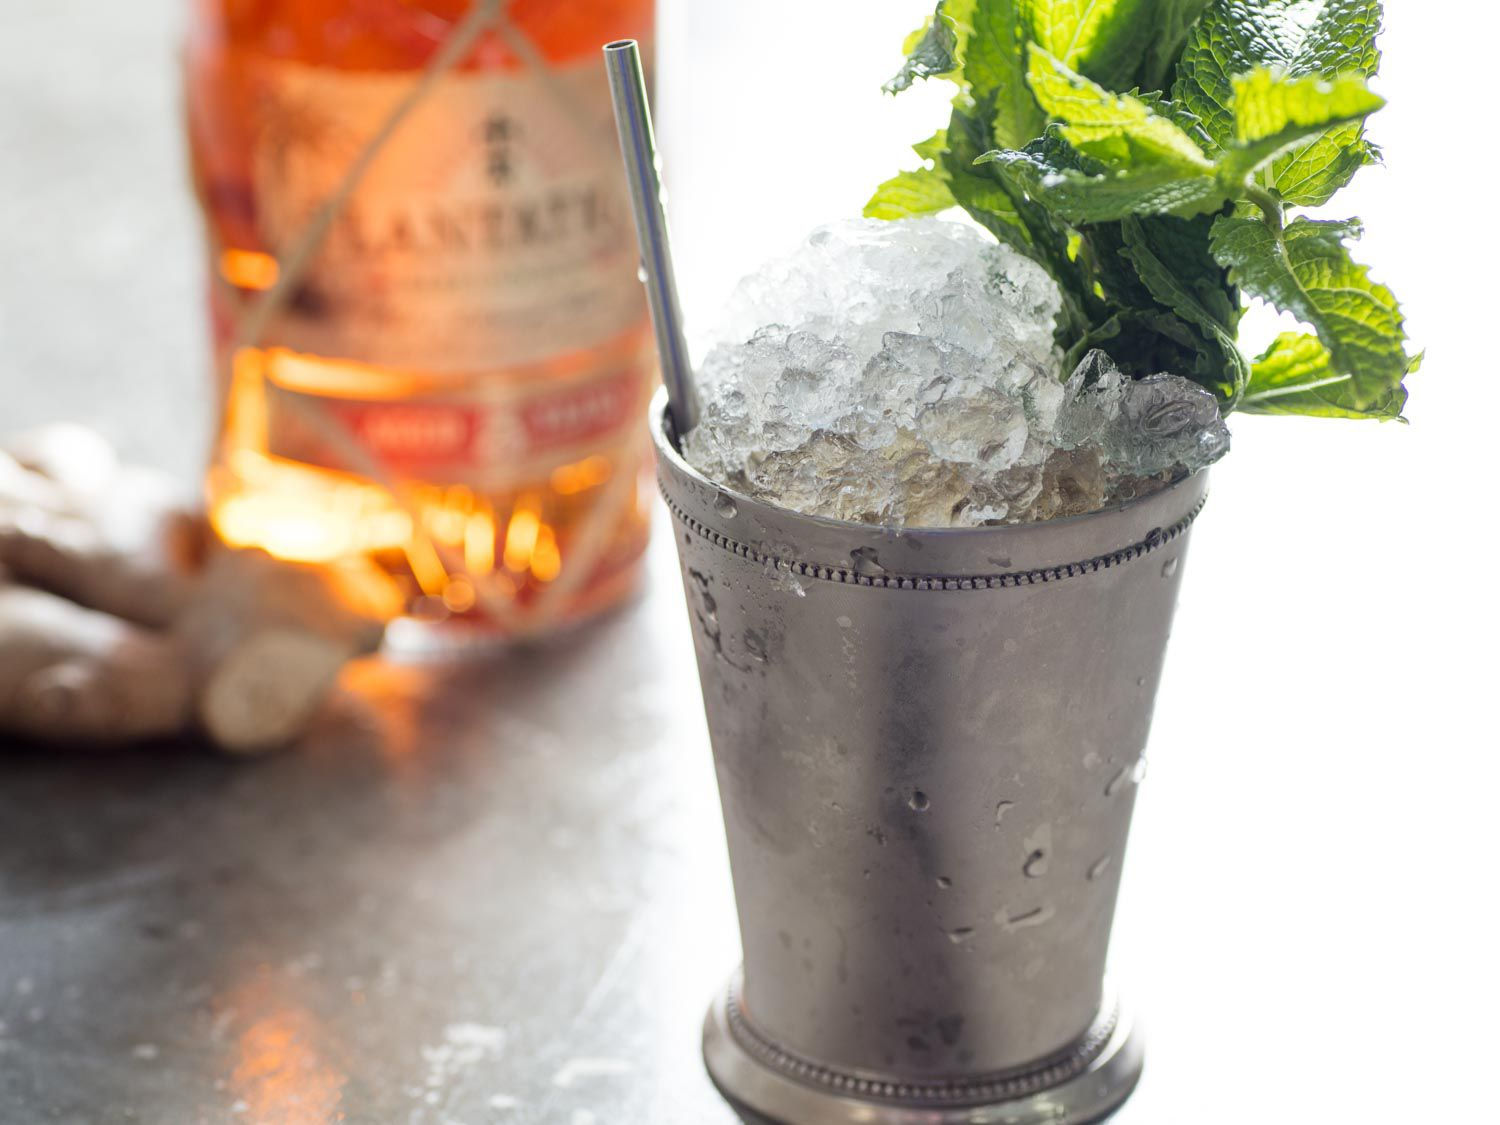 A Dark and Stormy mint julep (rum, ginger beer, mint, and maple syrup) in a frosted julep cup